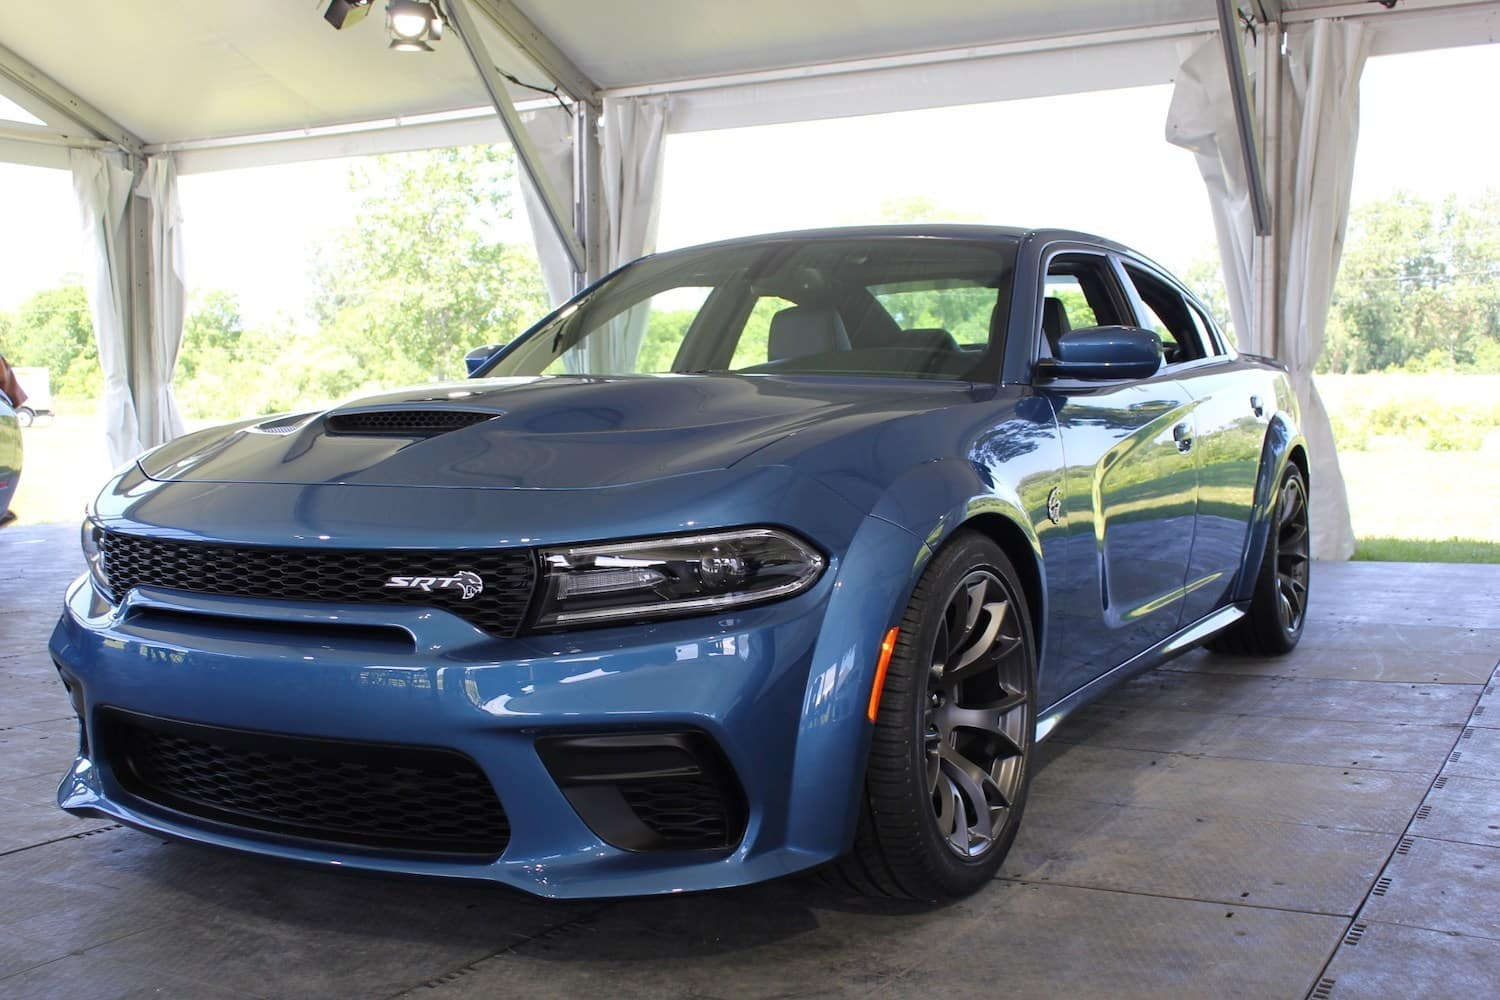 Why The Dodge Charger Deserves The Widebody Package